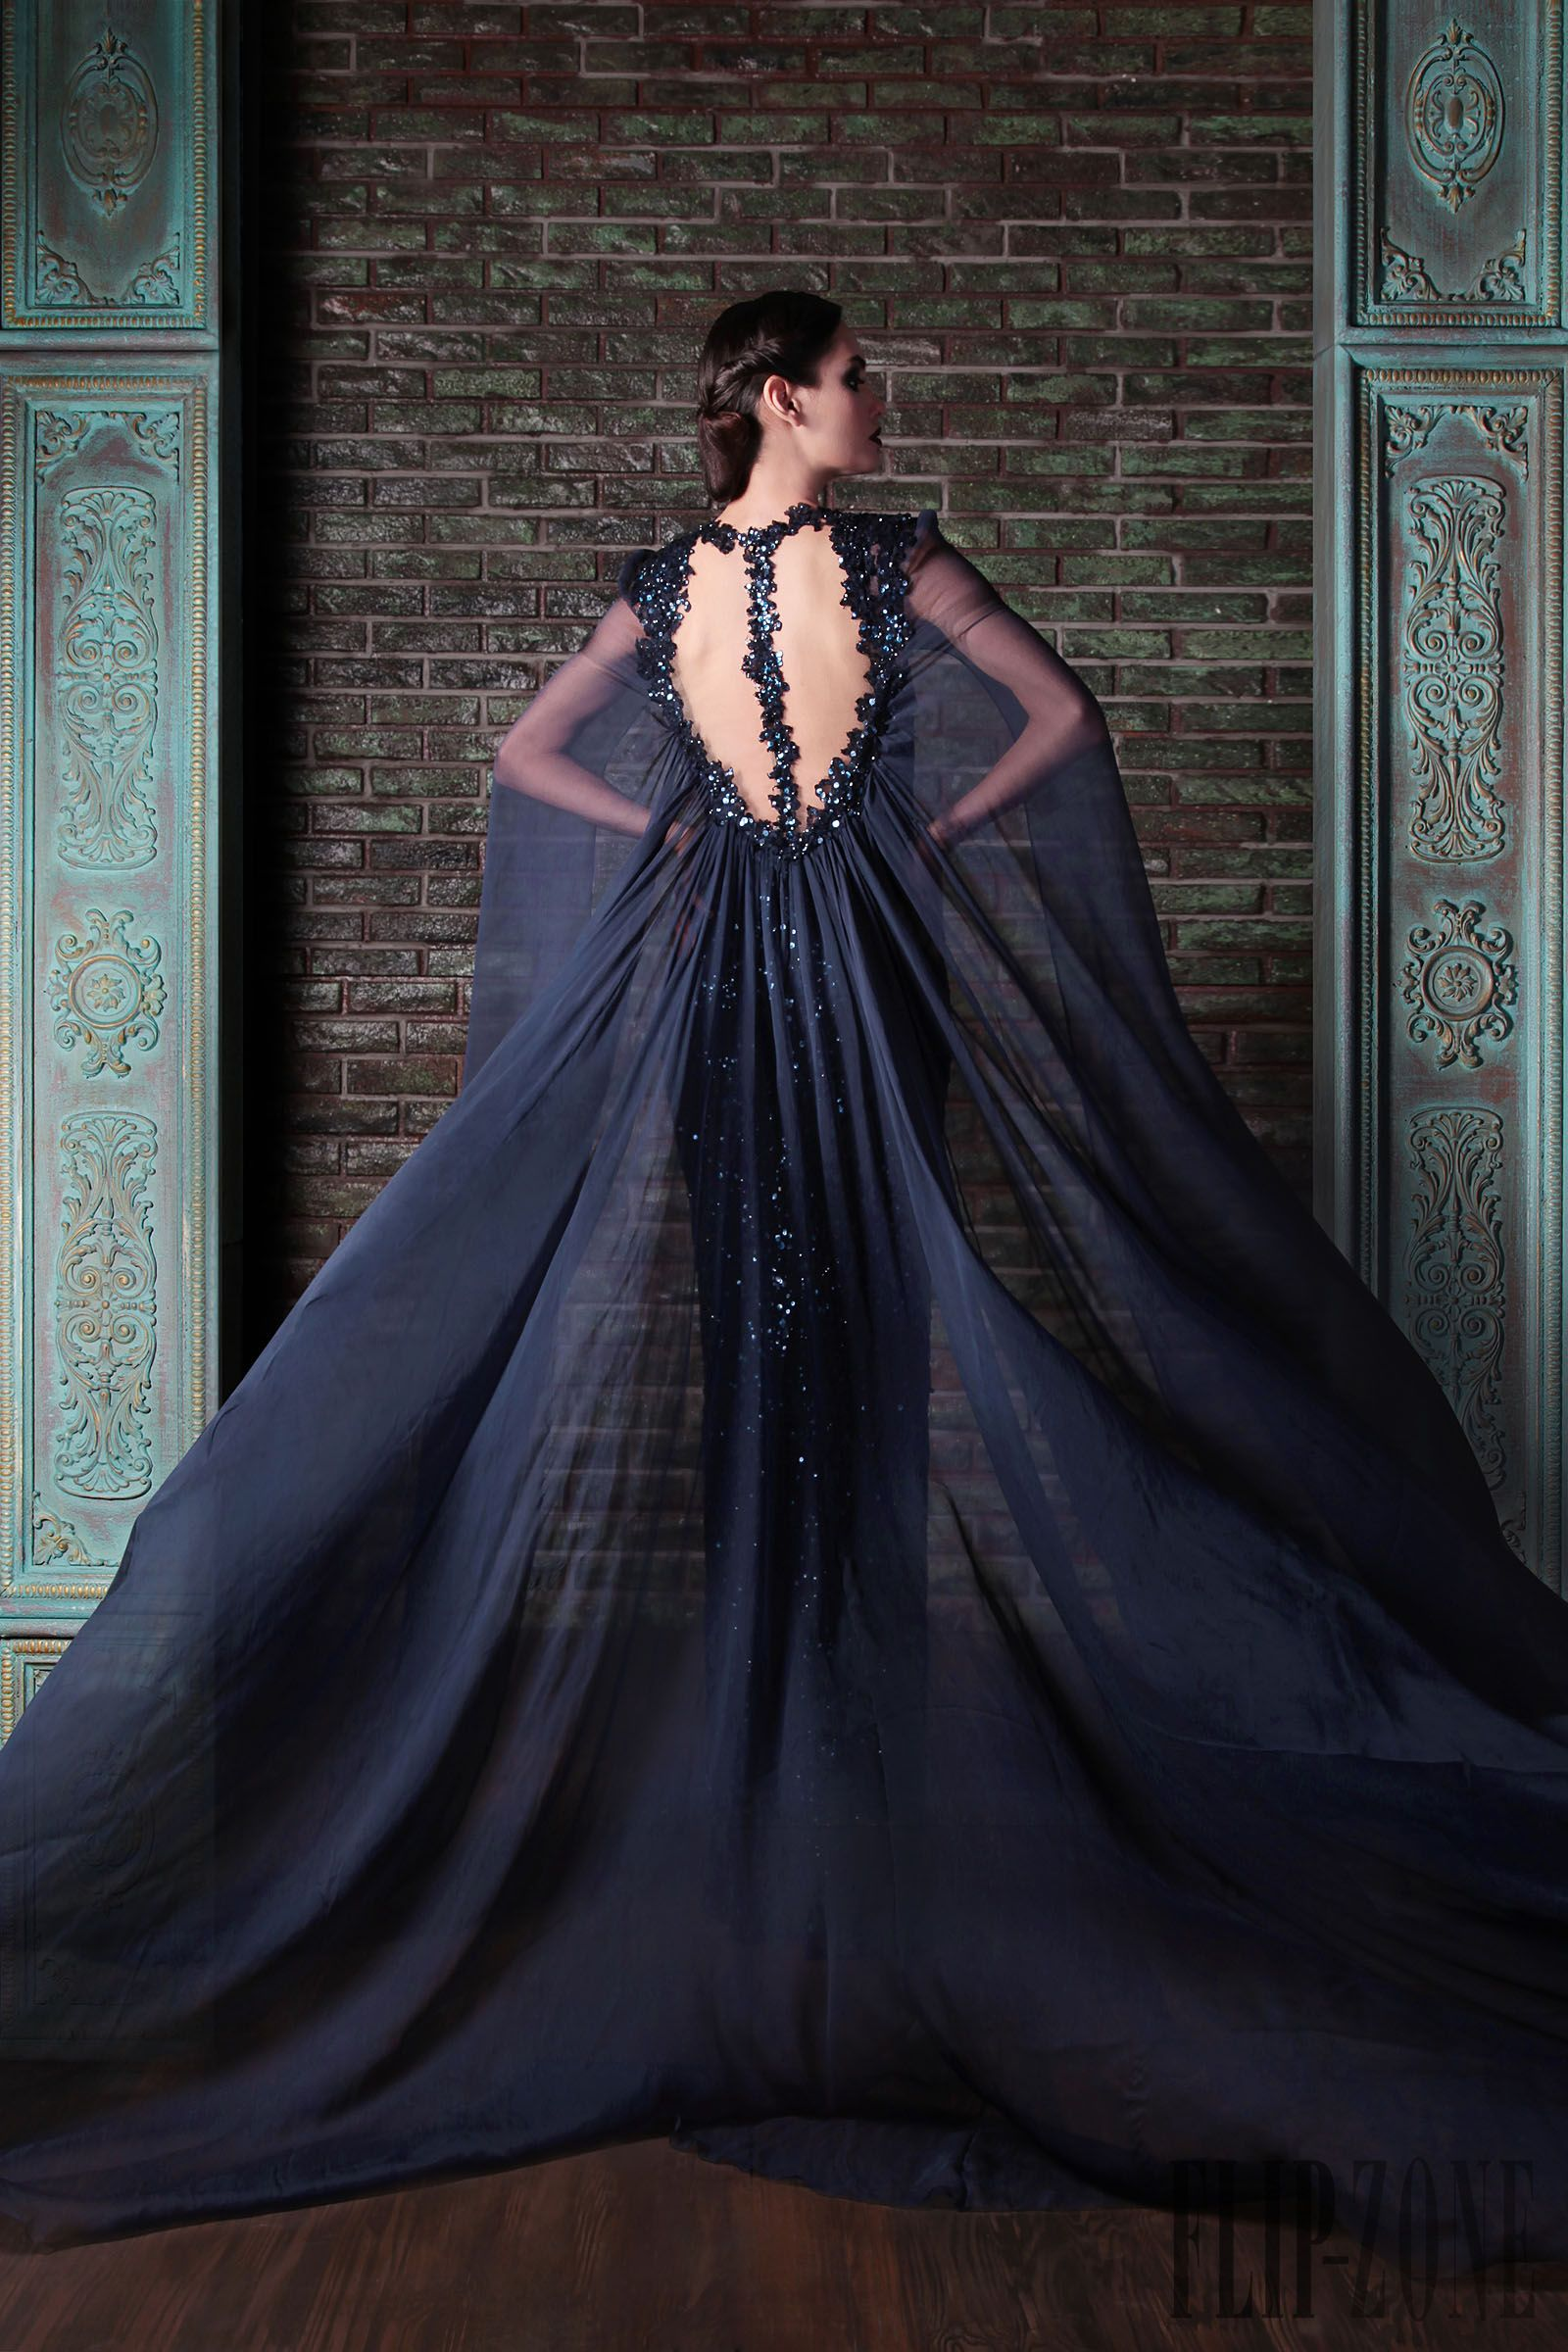 Pin by vickygiannouli on haute couture pinterest haute - Robe reine des glaces ...